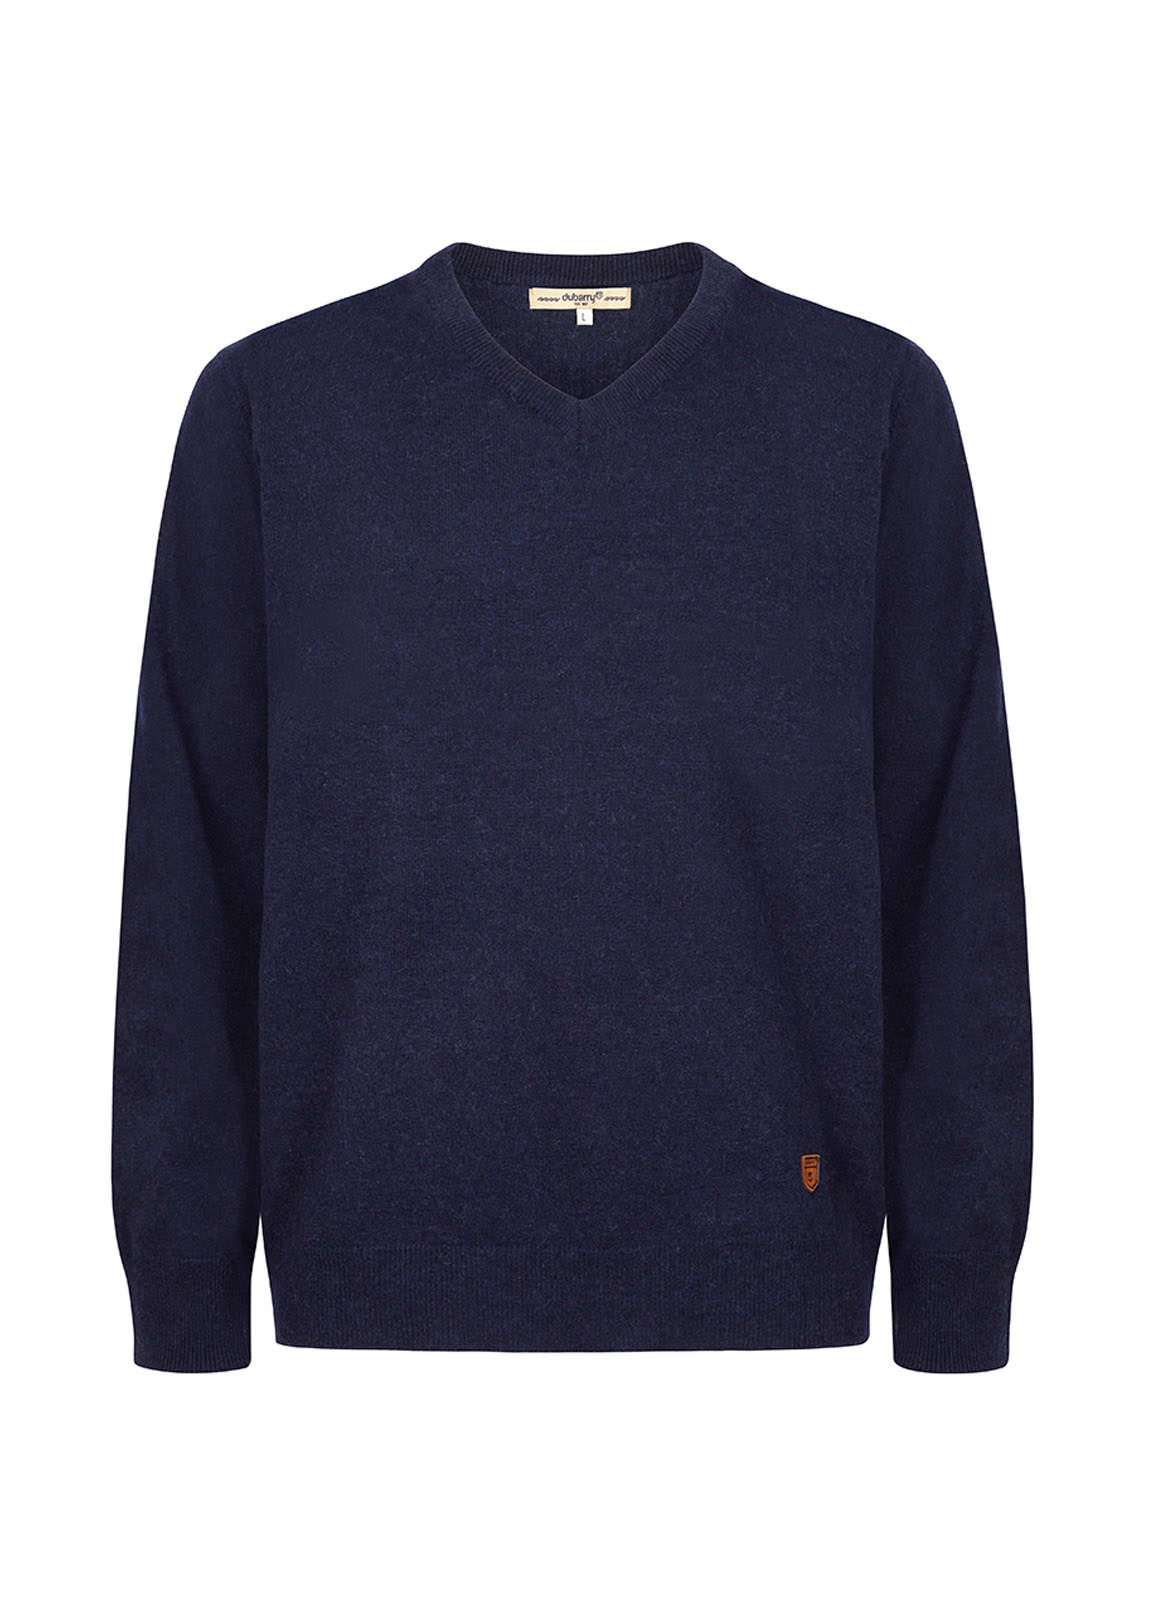 Brennan Men's Knitted Sweater  - Navy